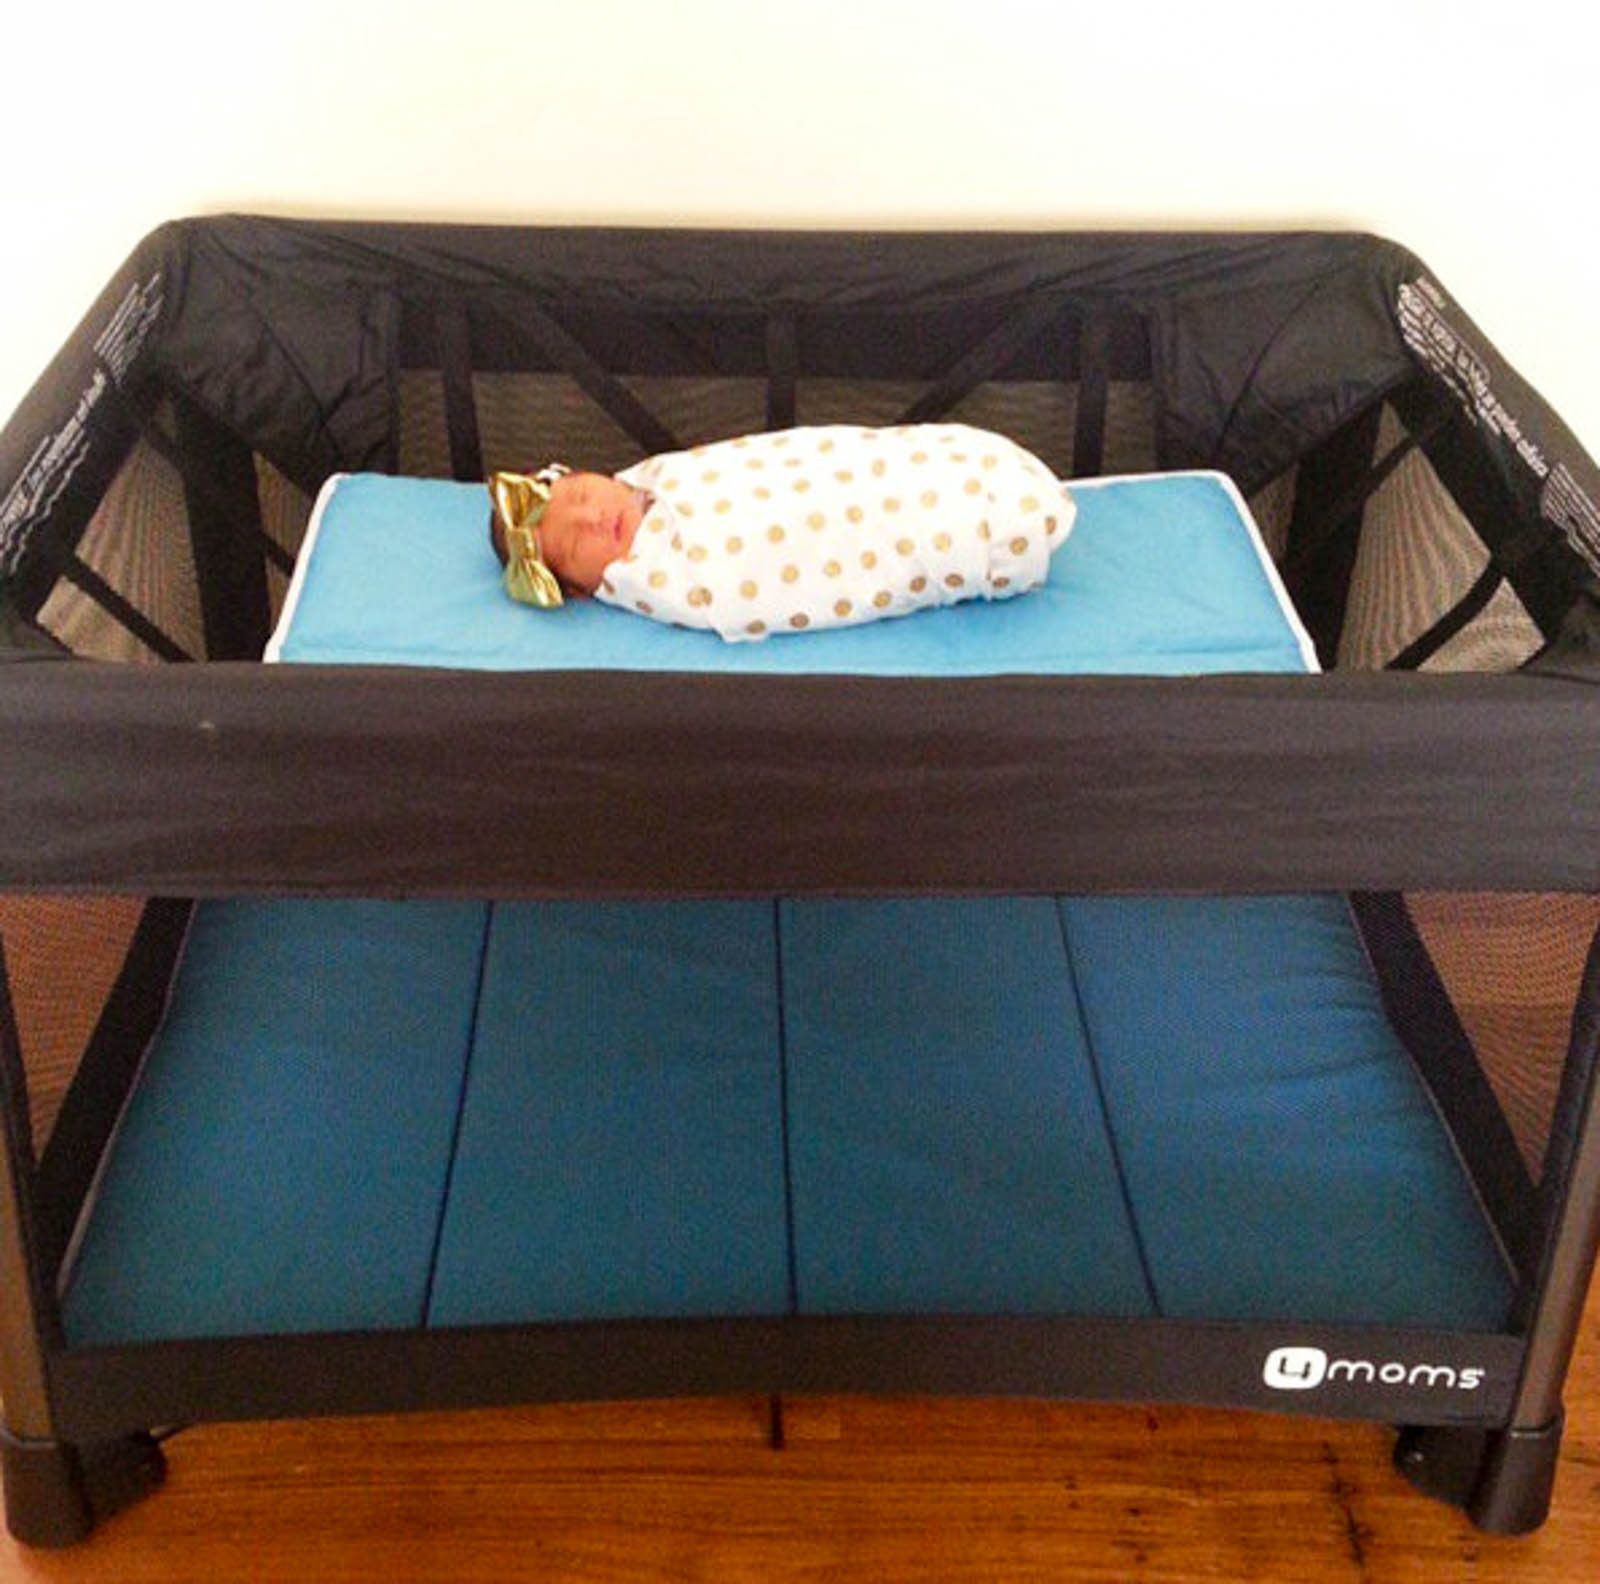 4moms breeze playard